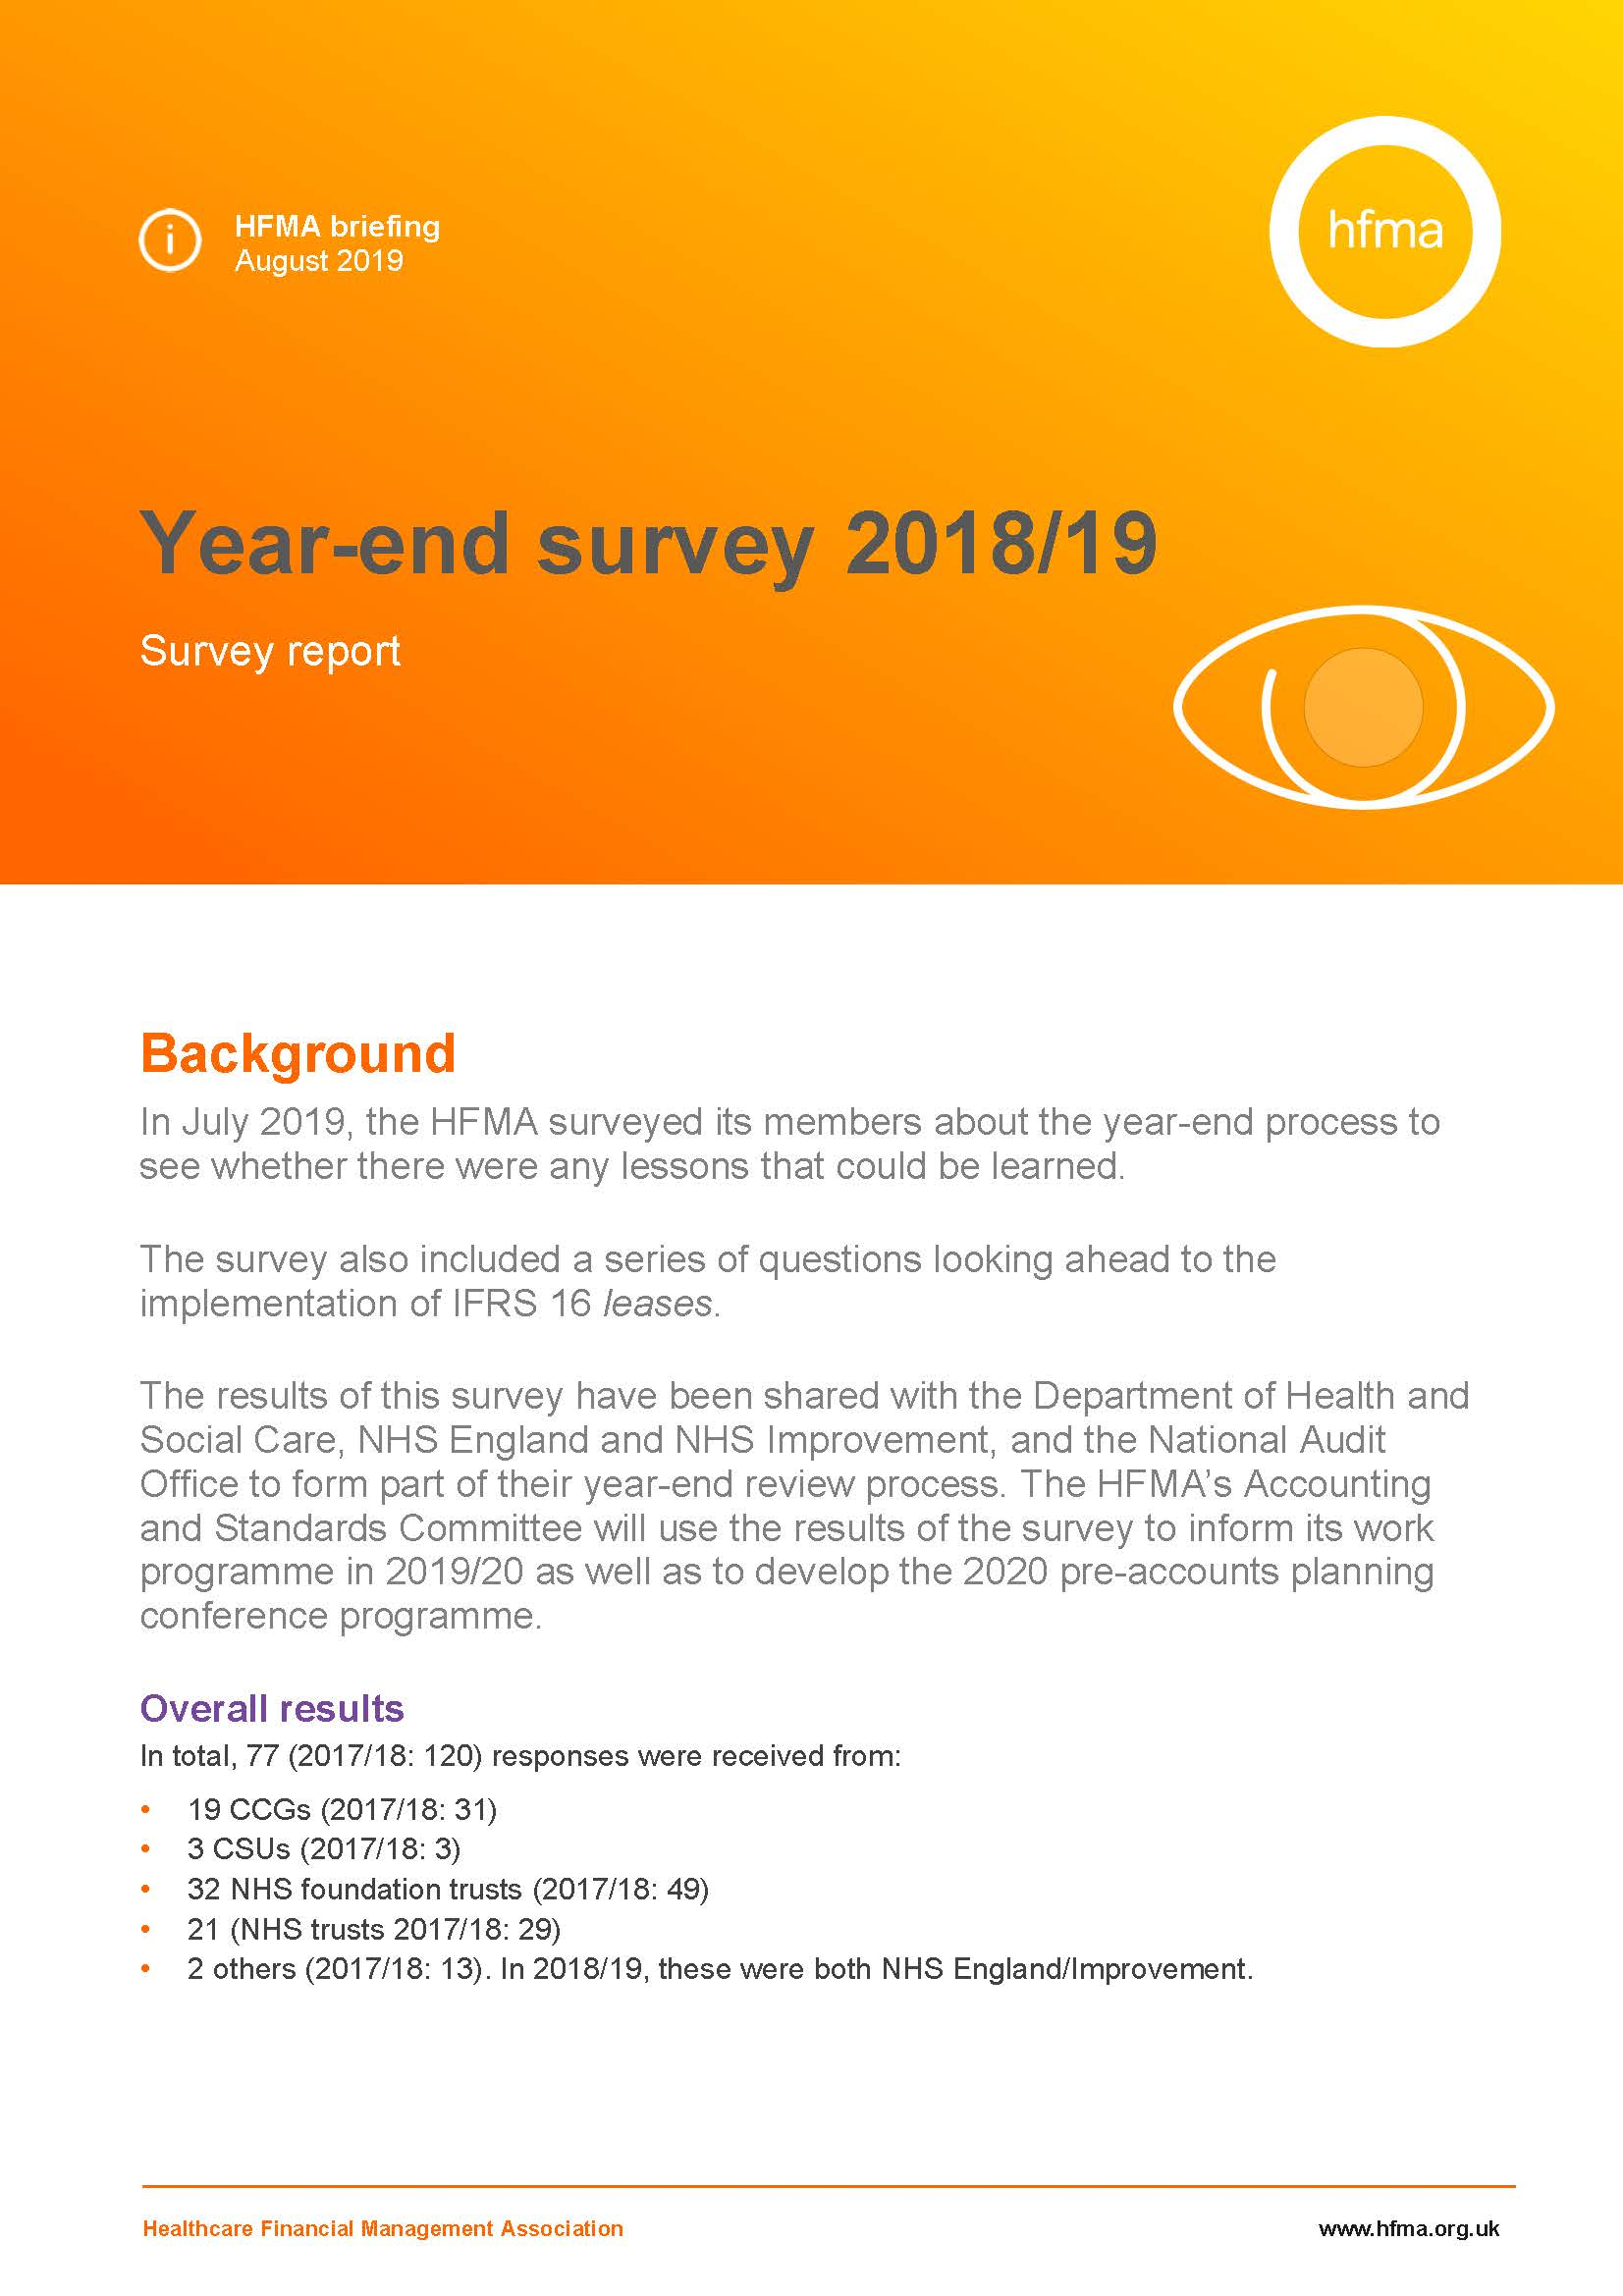 Year-end survey 2018/19